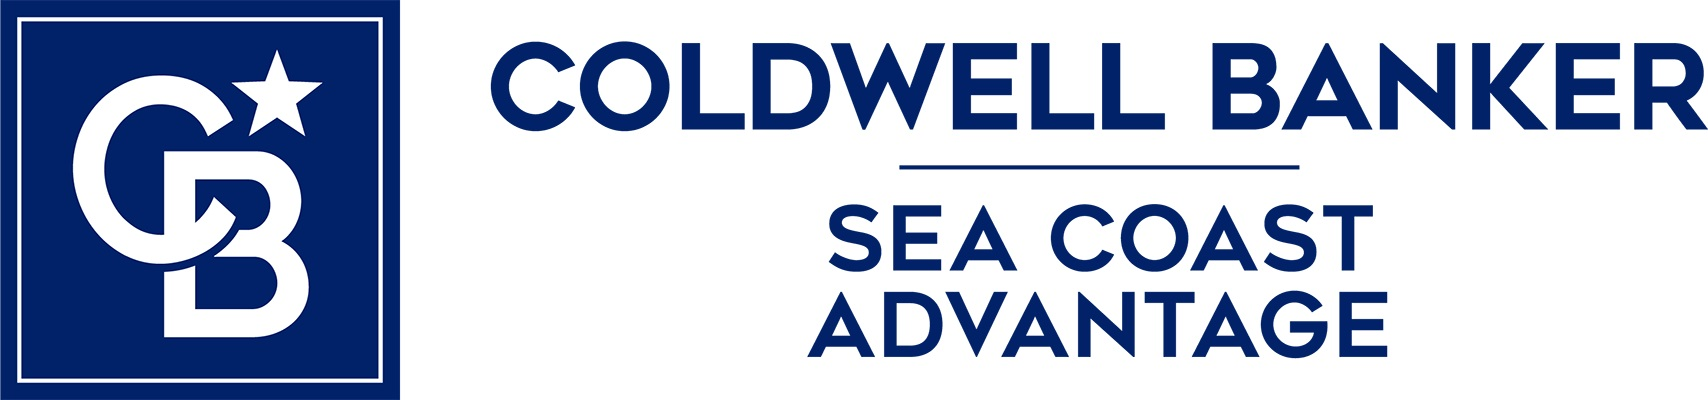 Dana White - Coldwell Banker Sea Coast Advantage Realty